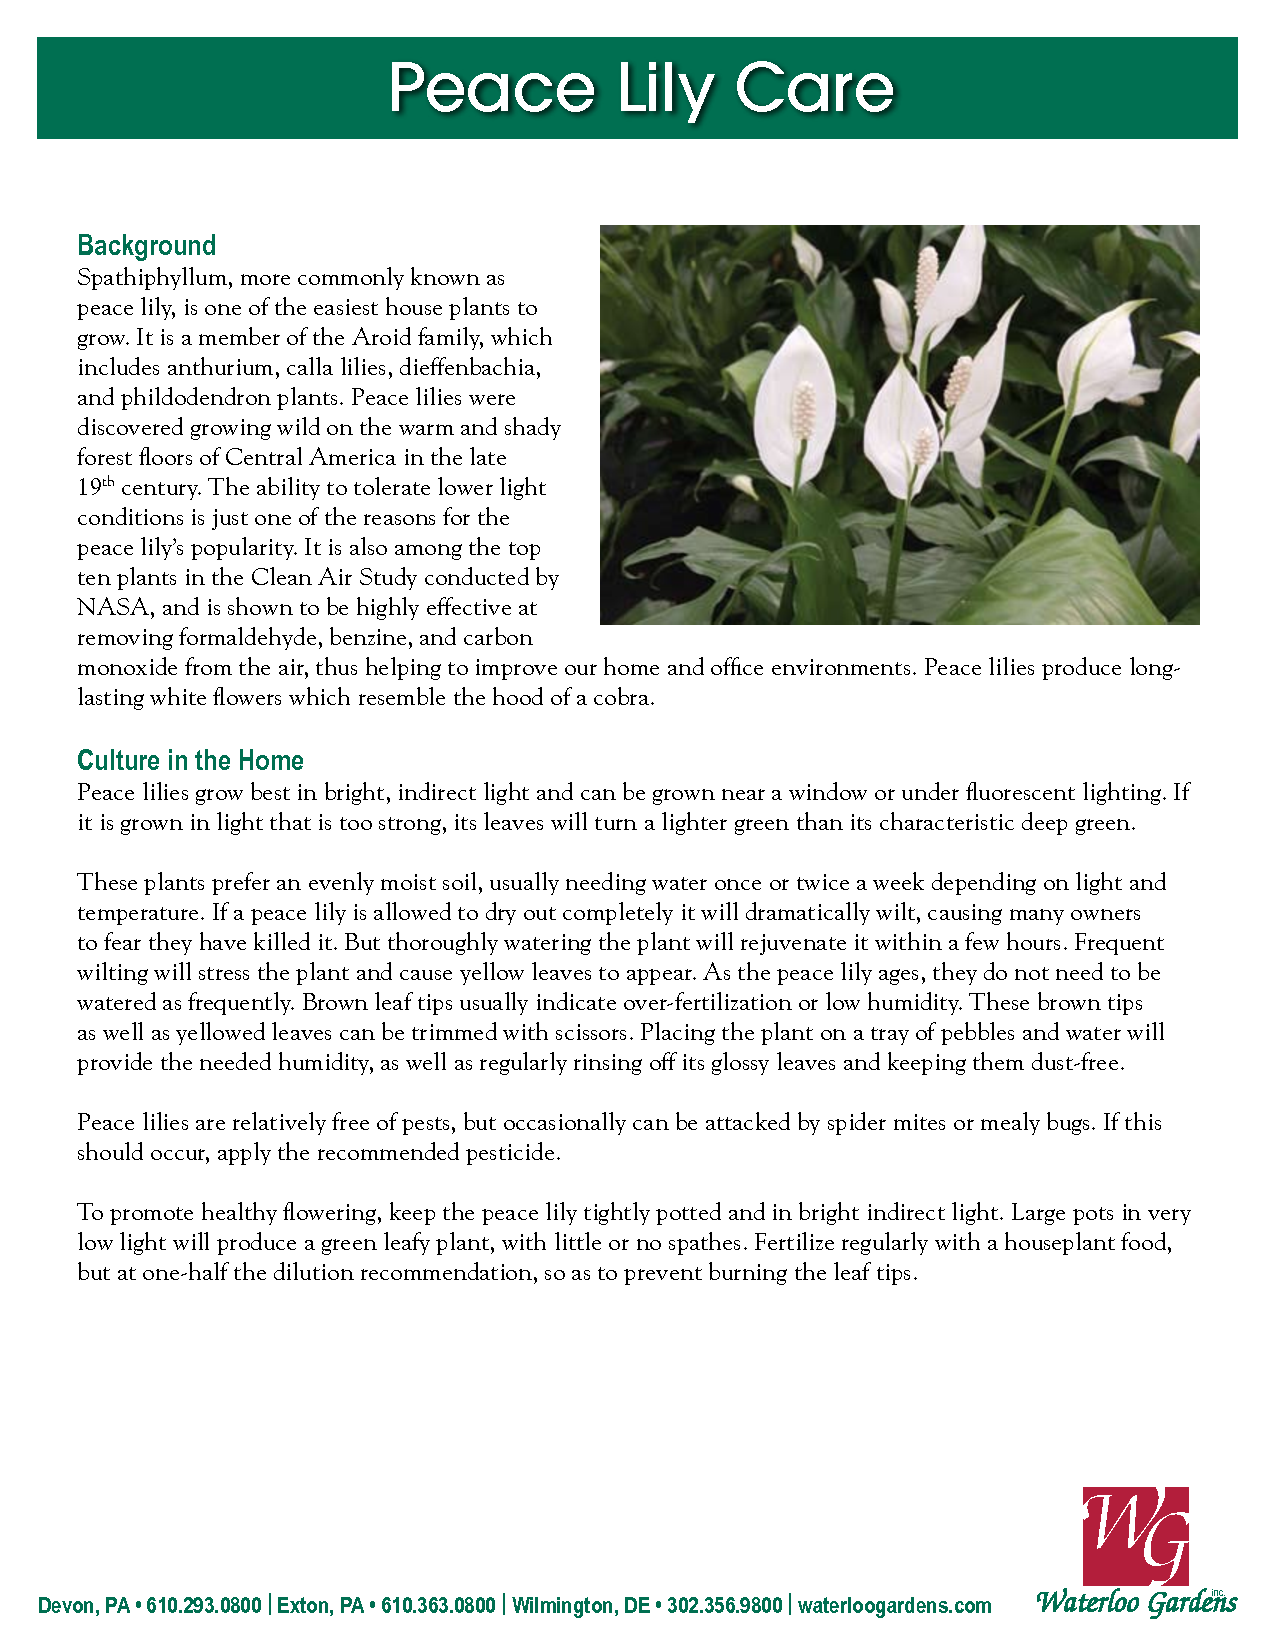 Peace Lily Plant Care House Plant Care Peace Lily